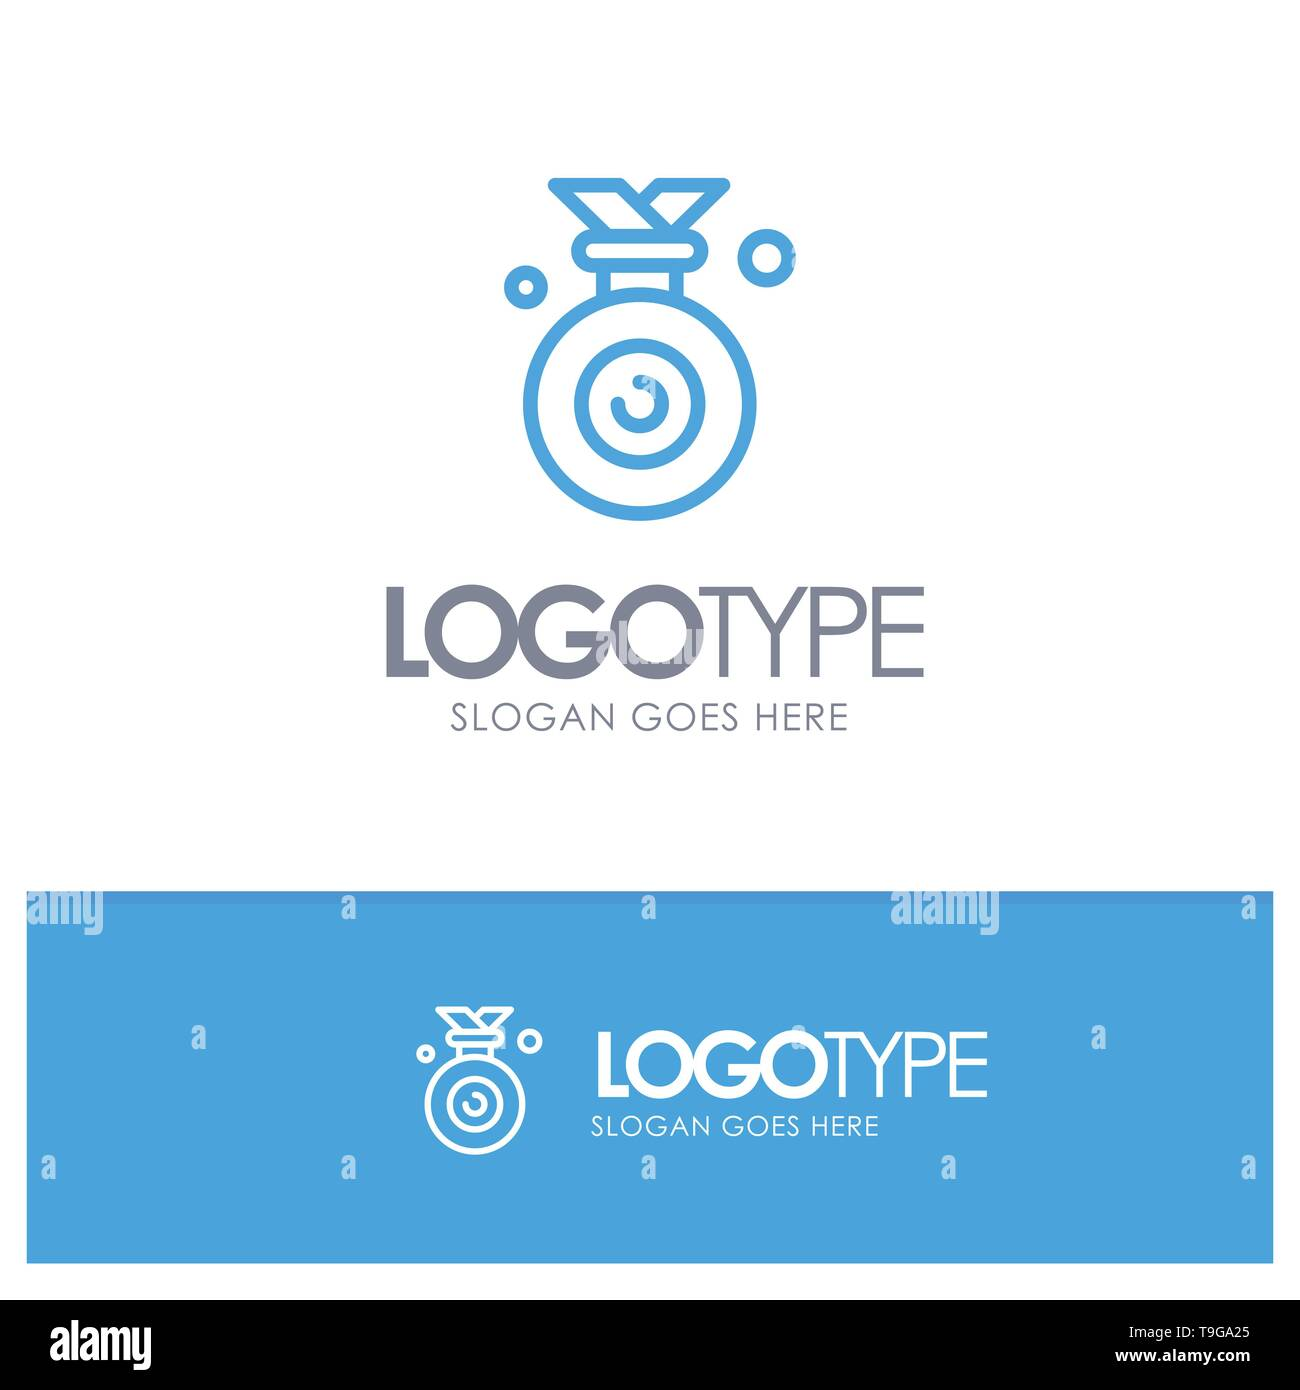 Medal, Olympic, Winner, Won Blue outLine Logo with place for tagline - Stock Vector